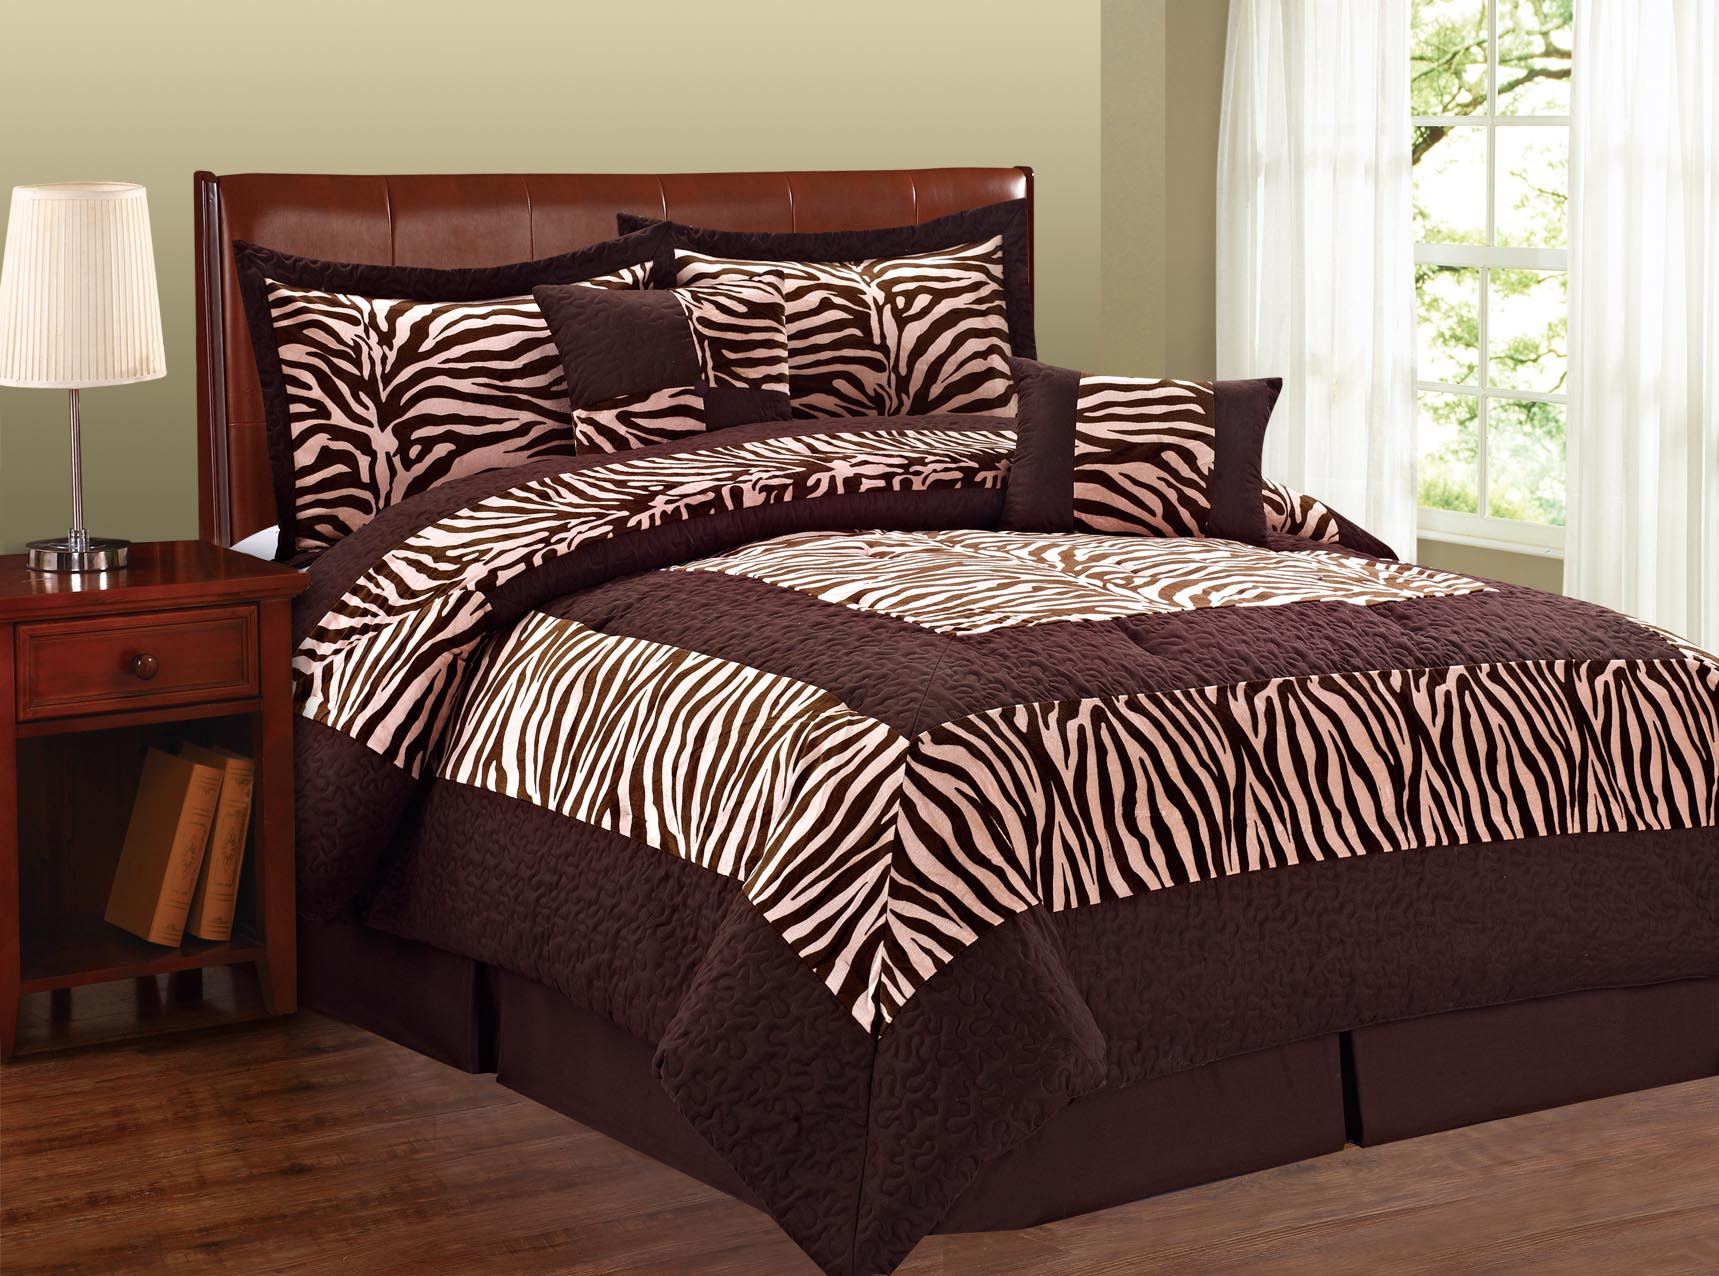 Animal print bedroom sets - Brown Light Pink Zebra Print Comforter Bed Set